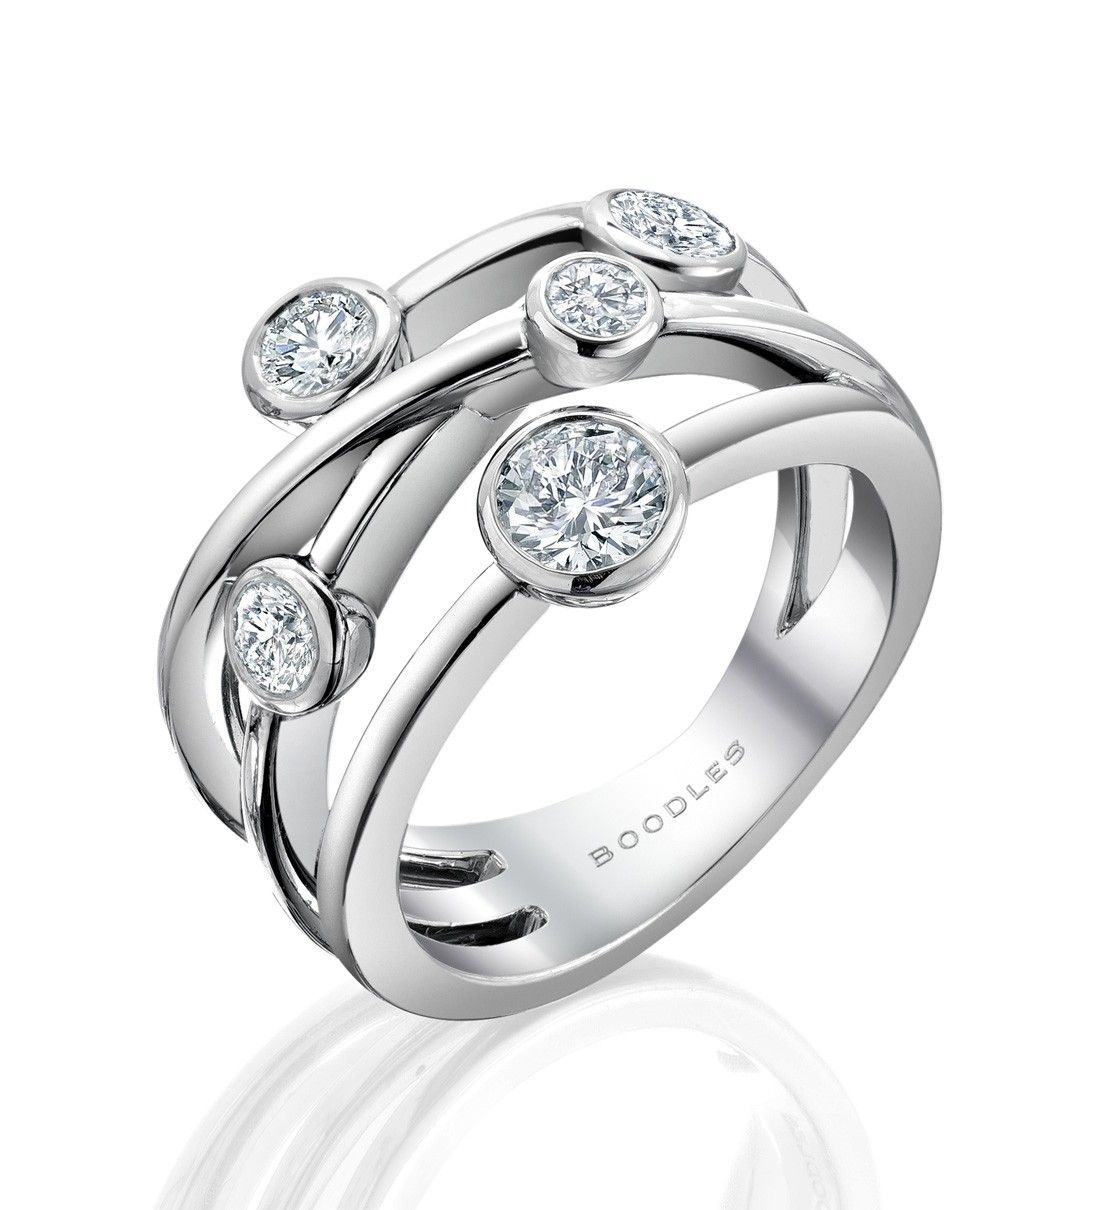 weddings your rin diamond engagement more classic should story because be ring main ultra rings